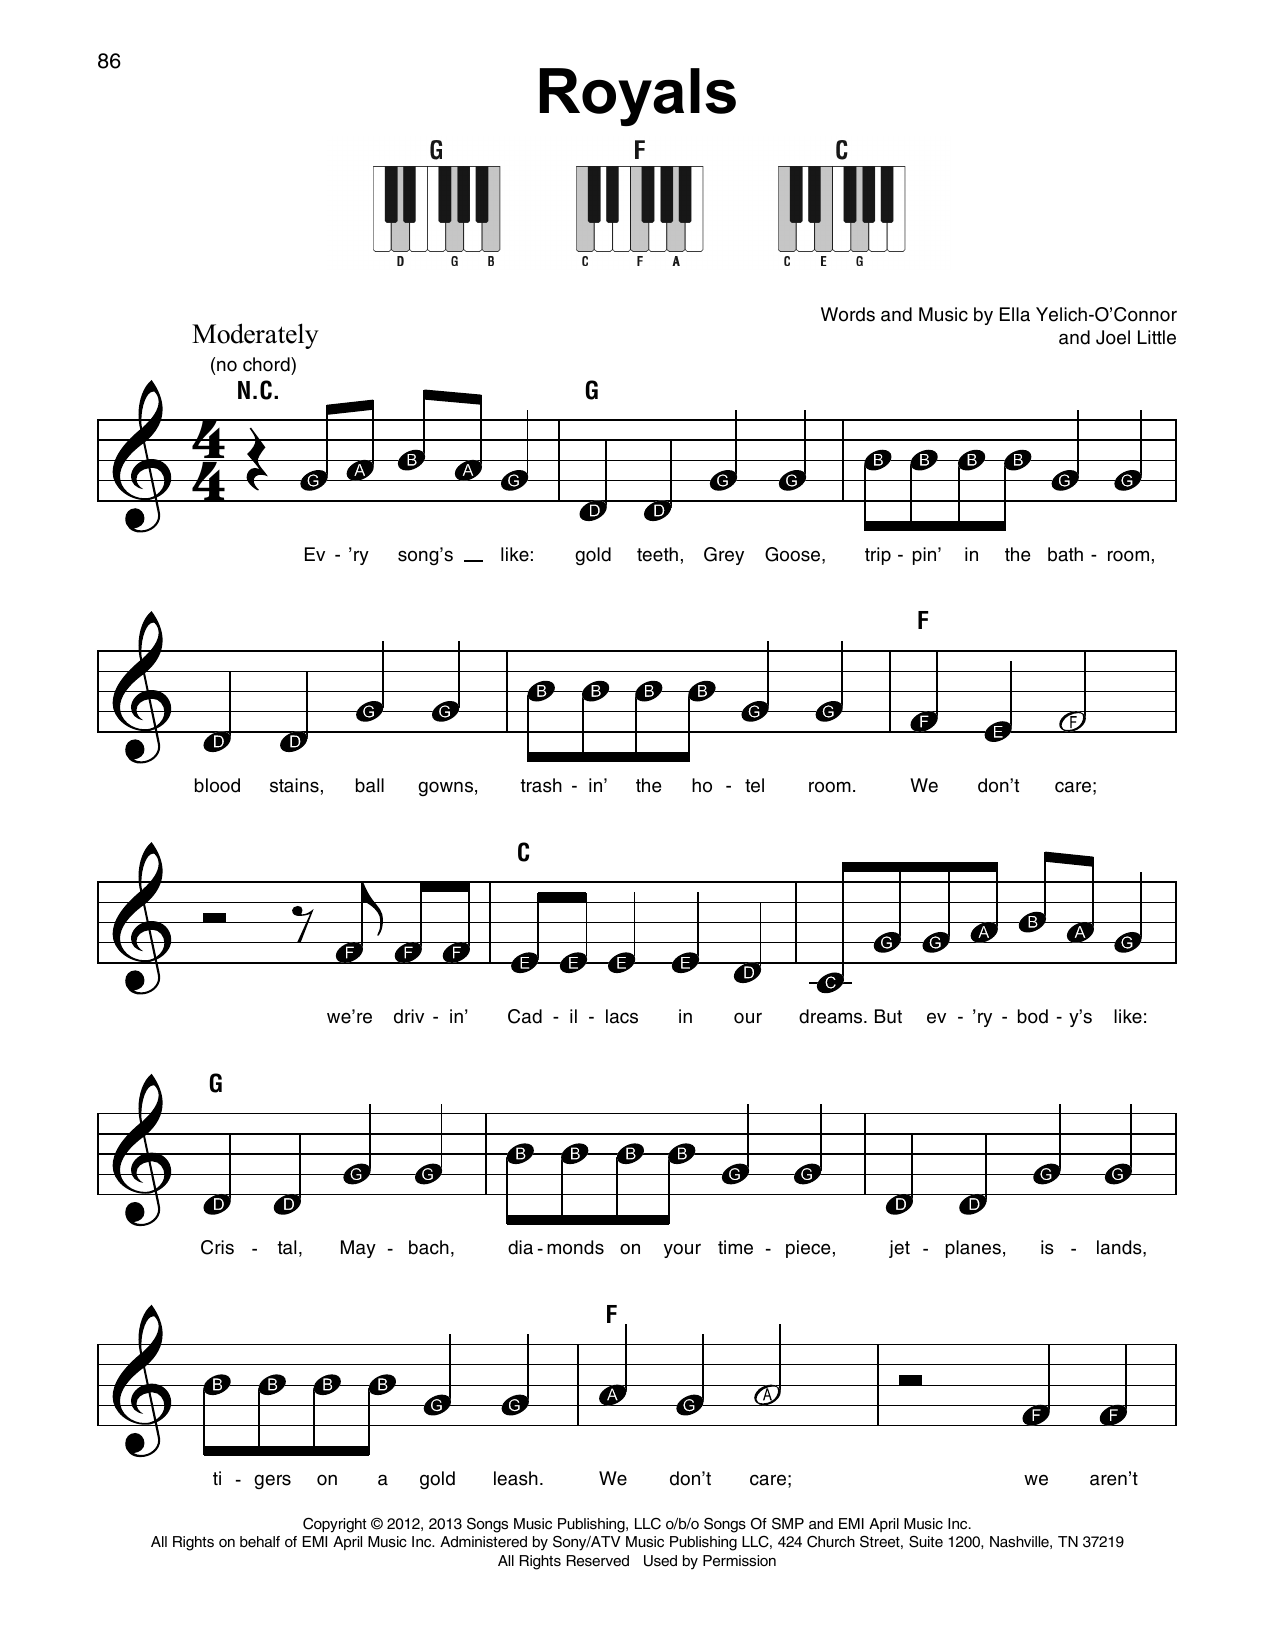 Royals sheet music by lorde super easy piano 179350 lorde royals super easy piano hexwebz Choice Image